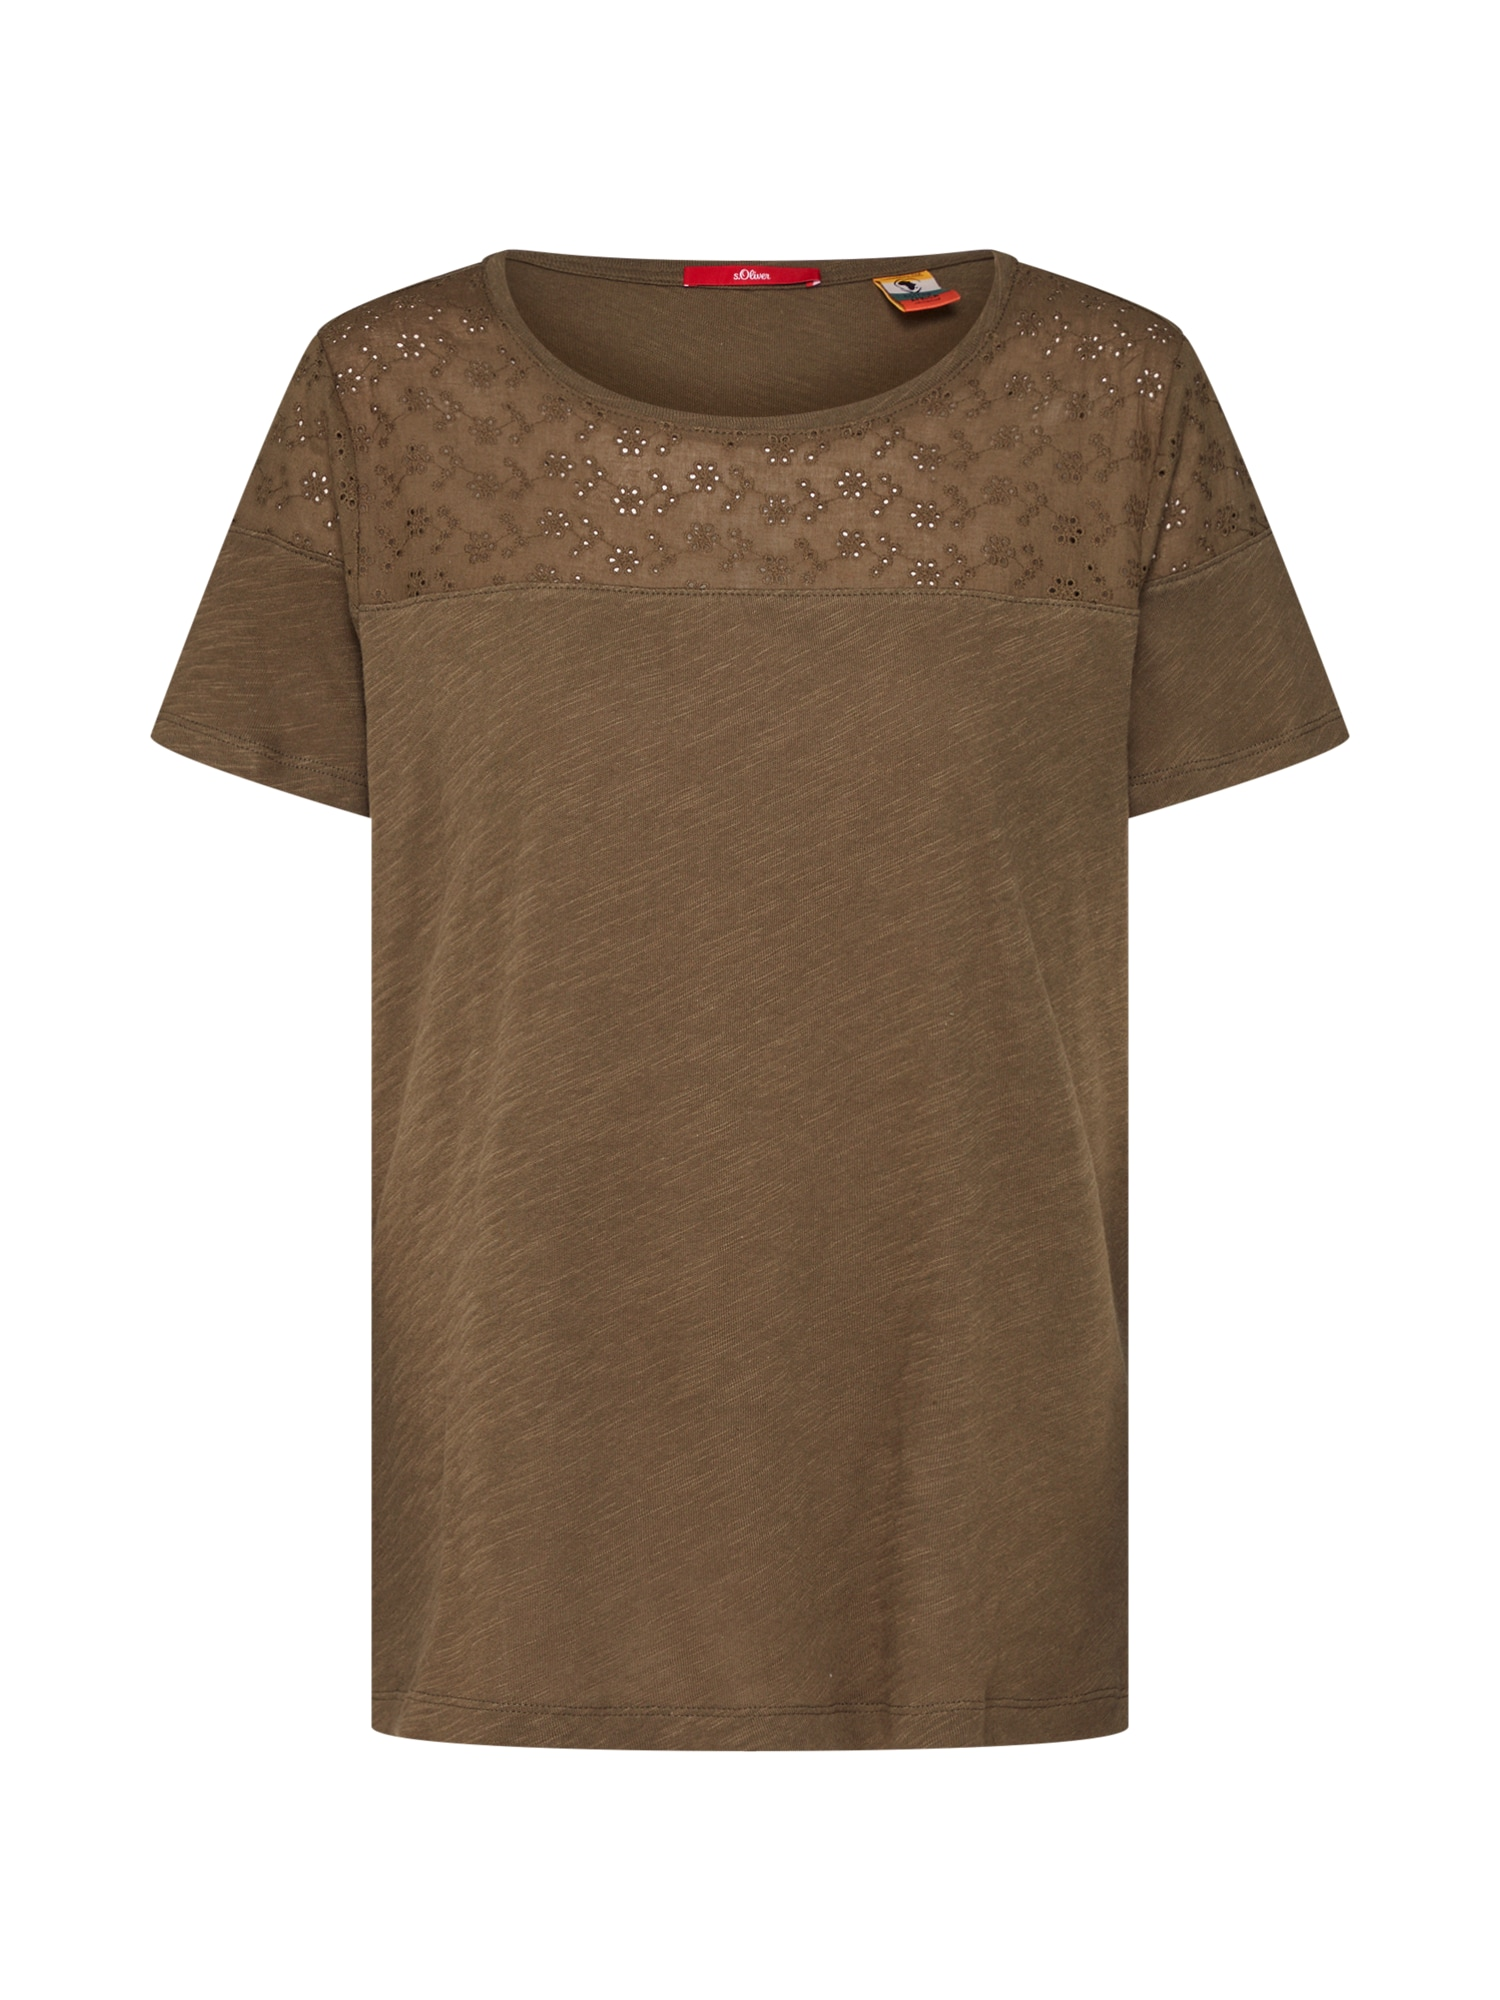 Tričko khaki S.Oliver RED LABEL